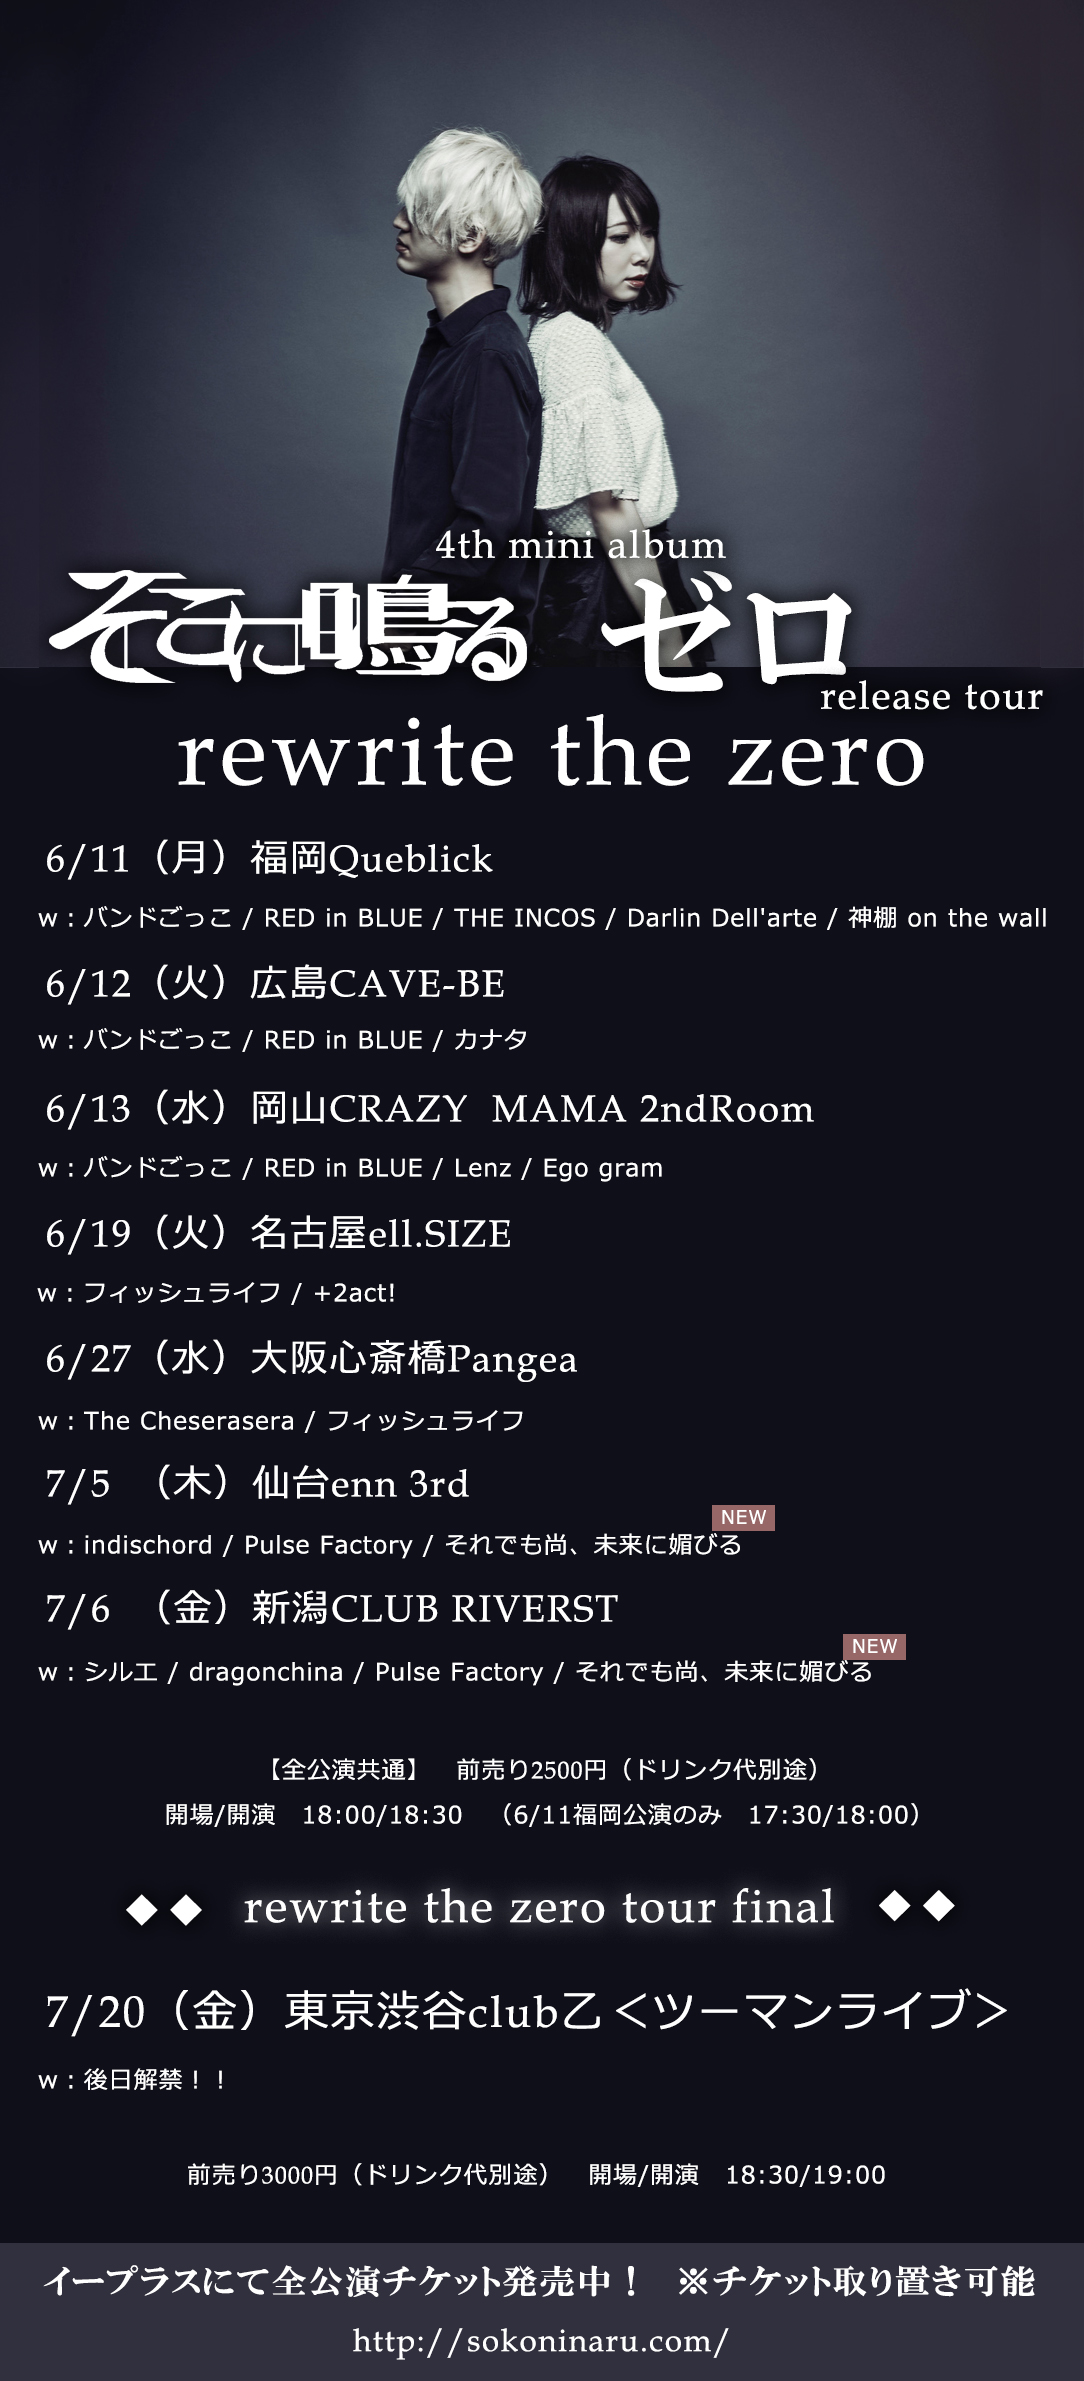 そこに鳴る「4th mini album「ゼロ」release tour 〜rewrite the zero〜」